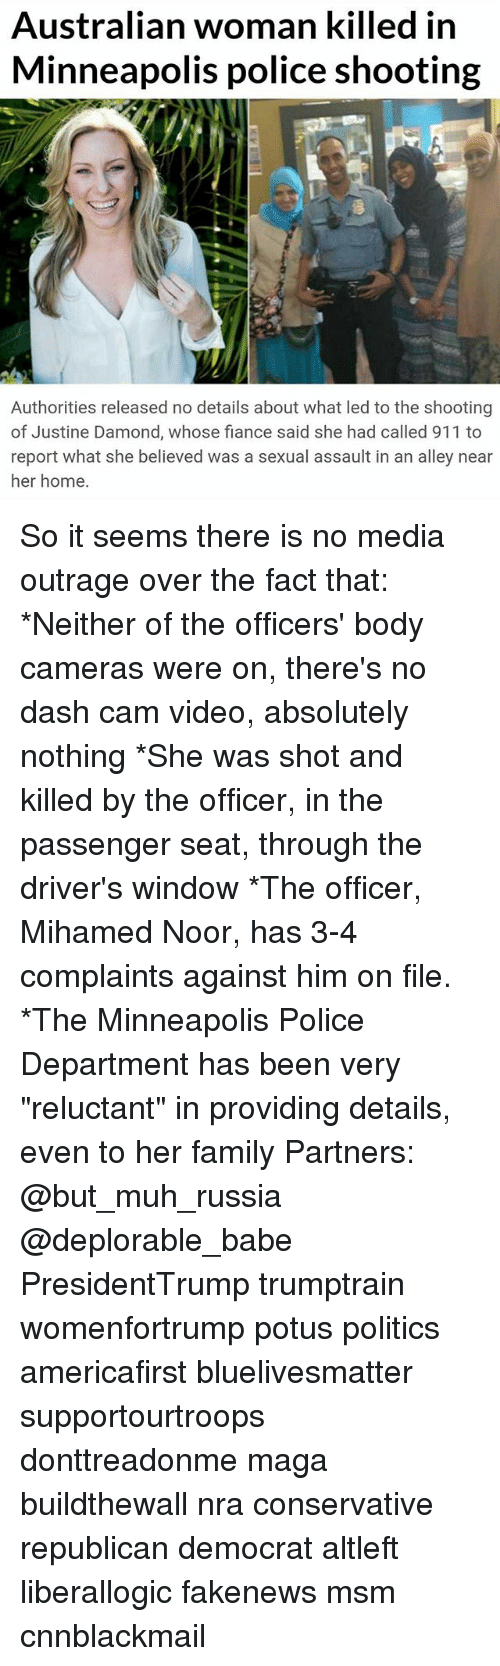 """Cnnblackmail: Australian woman killed in  Minneapolis police shooting  Authorities released no details about what led to the shooting  of Justine Damond, whose fiance said she had called 911 to  report what she believed was a sexual assault in an alley near  her home. So it seems there is no media outrage over the fact that: *Neither of the officers' body cameras were on, there's no dash cam video, absolutely nothing *She was shot and killed by the officer, in the passenger seat, through the driver's window *The officer, Mihamed Noor, has 3-4 complaints against him on file. *The Minneapolis Police Department has been very """"reluctant"""" in providing details, even to her family Partners: @but_muh_russia @deplorable_babe PresidentTrump trumptrain womenfortrump potus politics americafirst bluelivesmatter supportourtroops donttreadonme maga buildthewall nra conservative republican democrat altleft liberallogic fakenews msm cnnblackmail"""